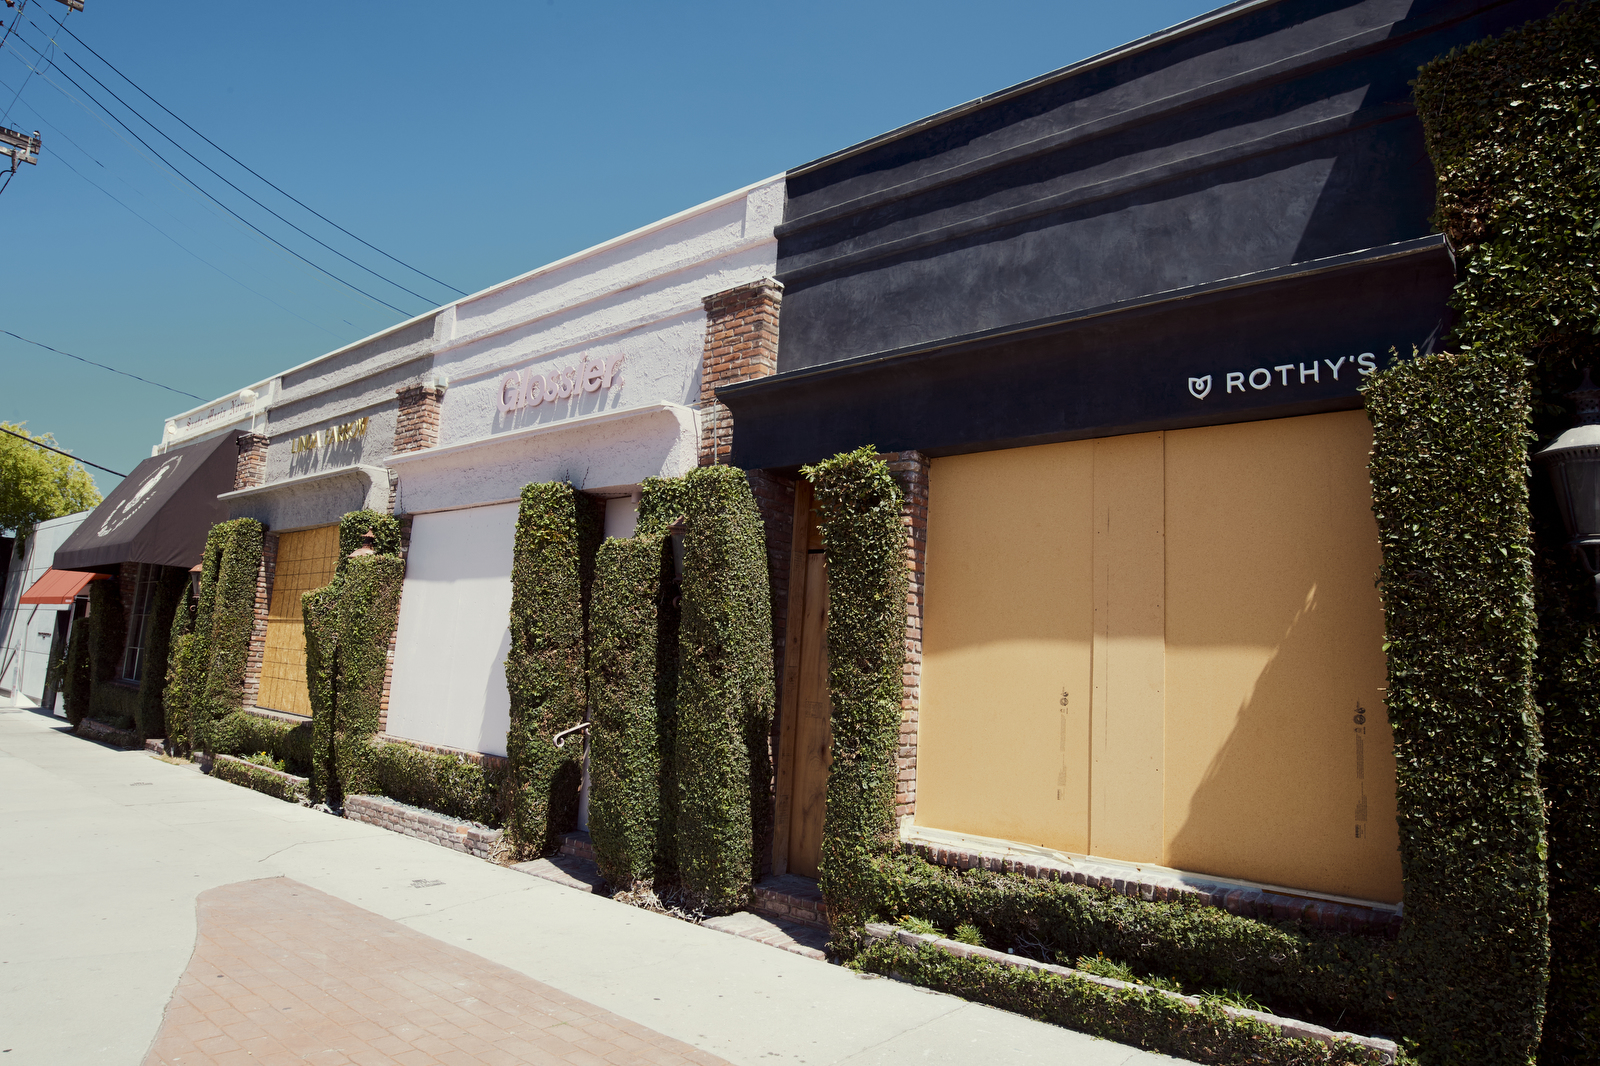 Stores on Melrose Place in Los Angeles experience a drop in popularity due to COVID-19.